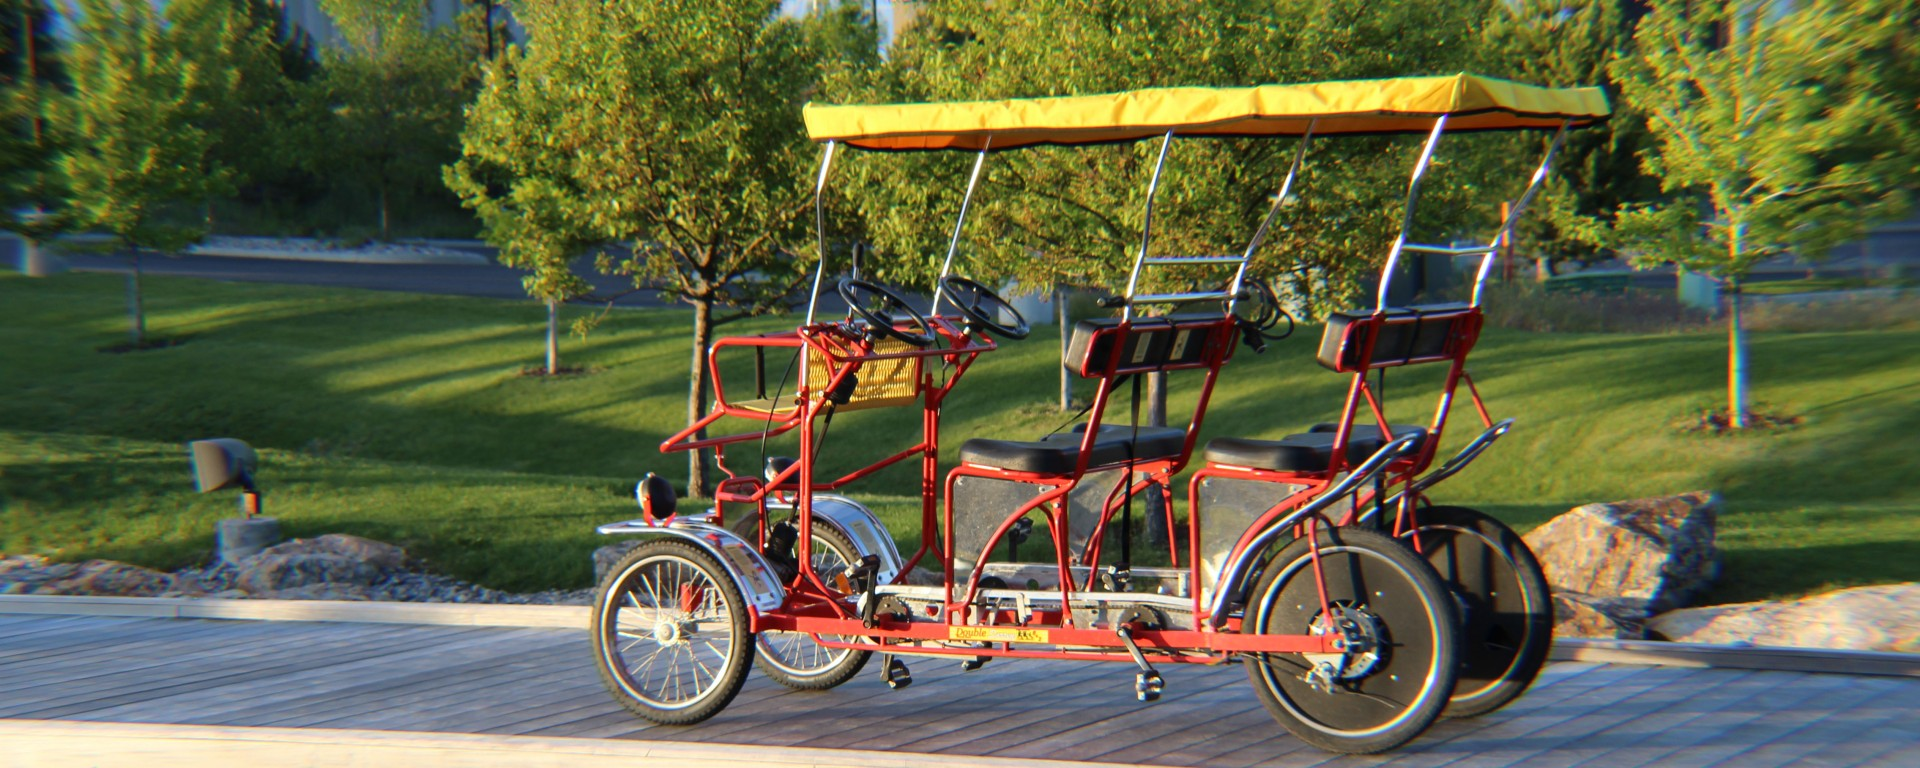 Benny S River Bike Rentals Idaho Falls 4 Pedal Surrey Bike Rental